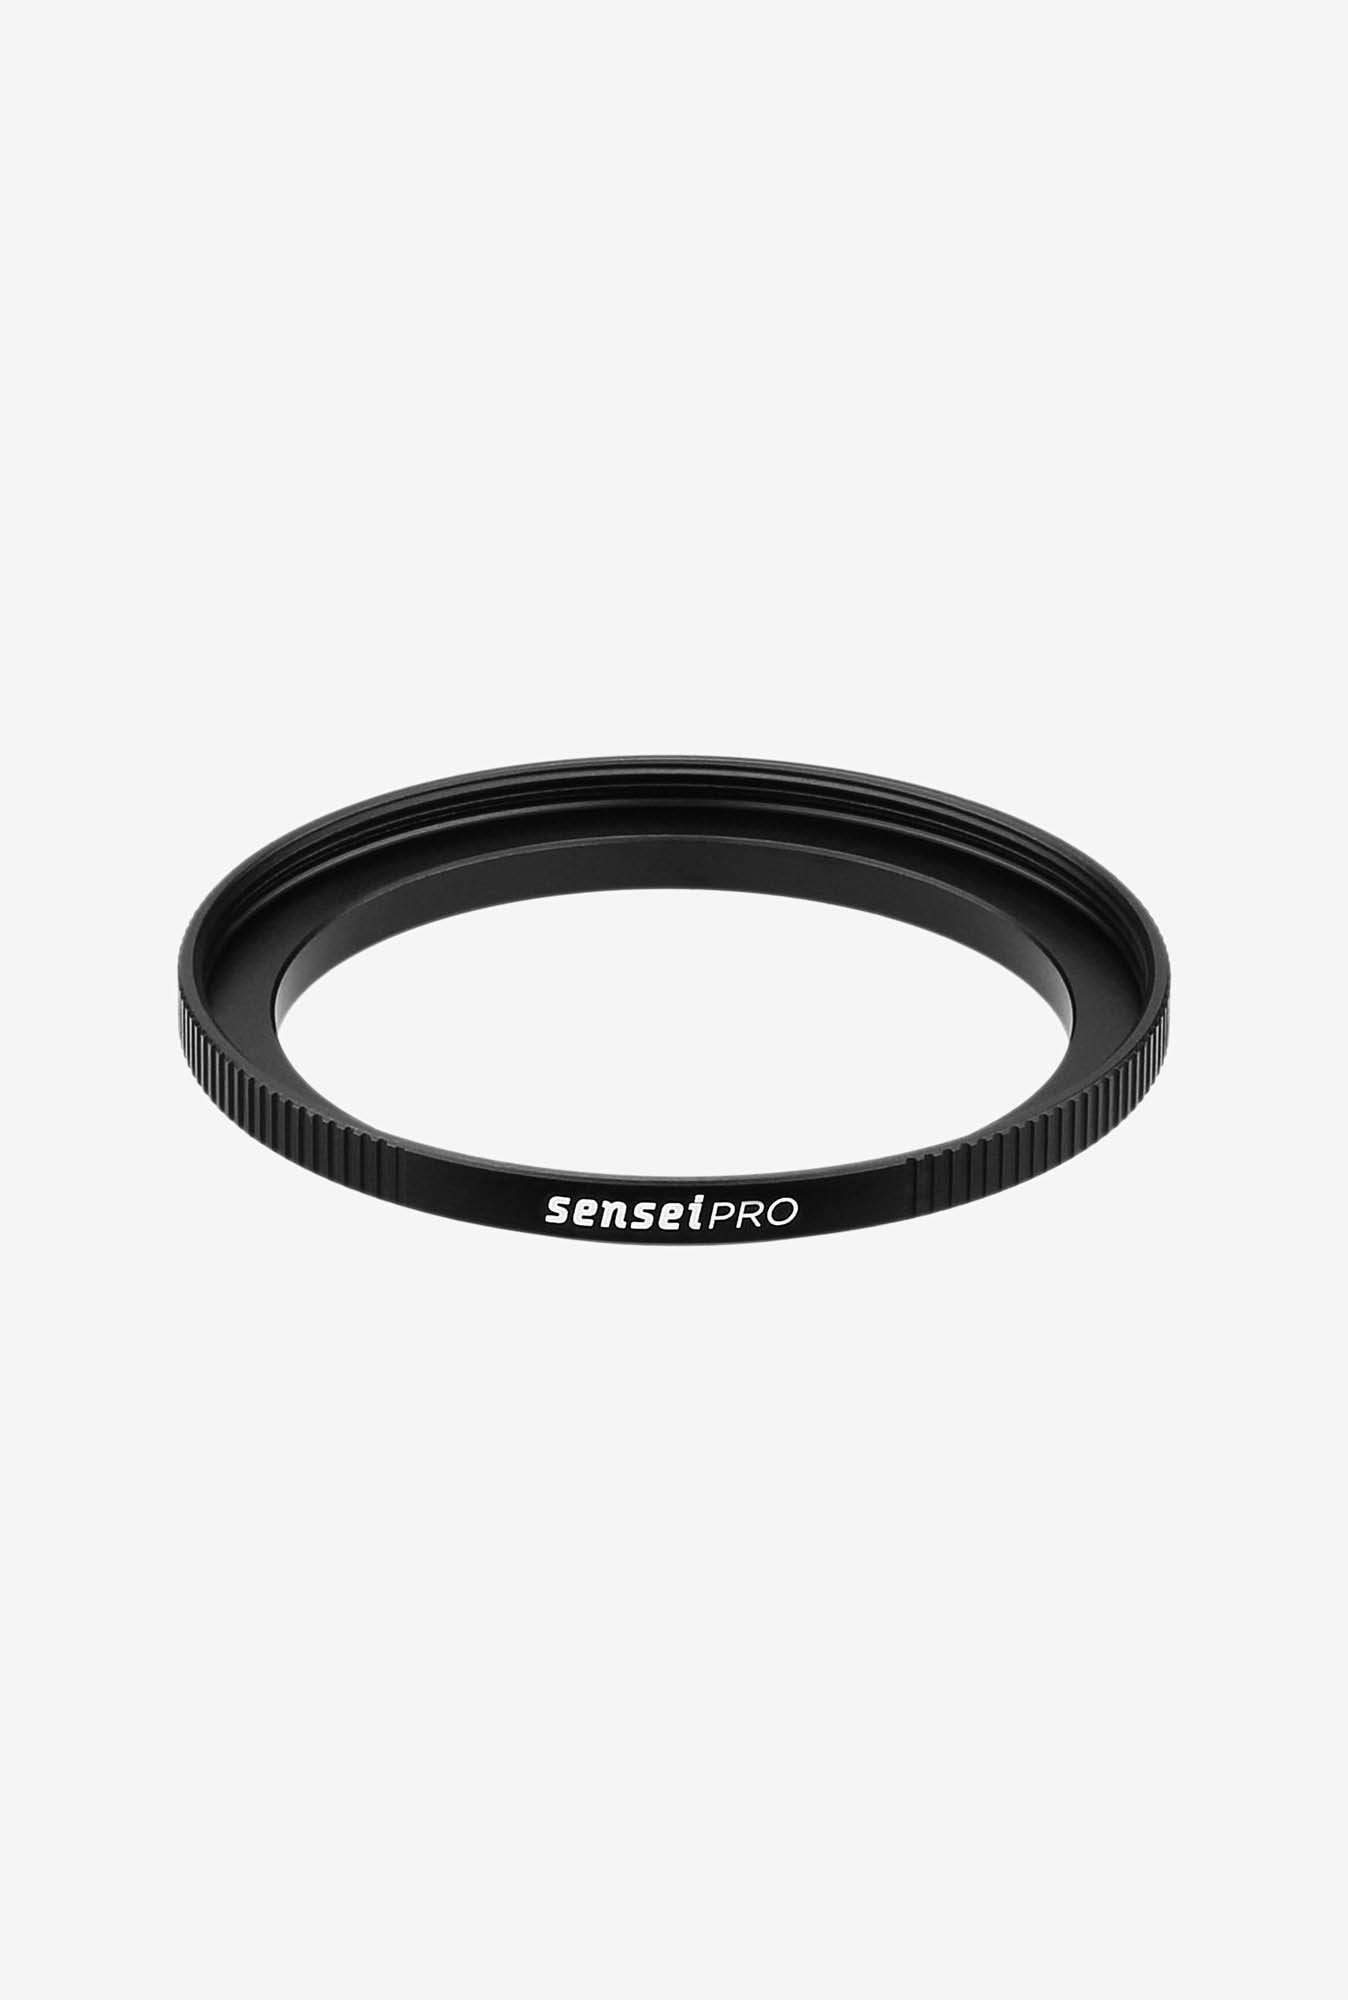 Sensie Pro SURPA4955 49-55mm Aluminium Step-Up Ring (Black)